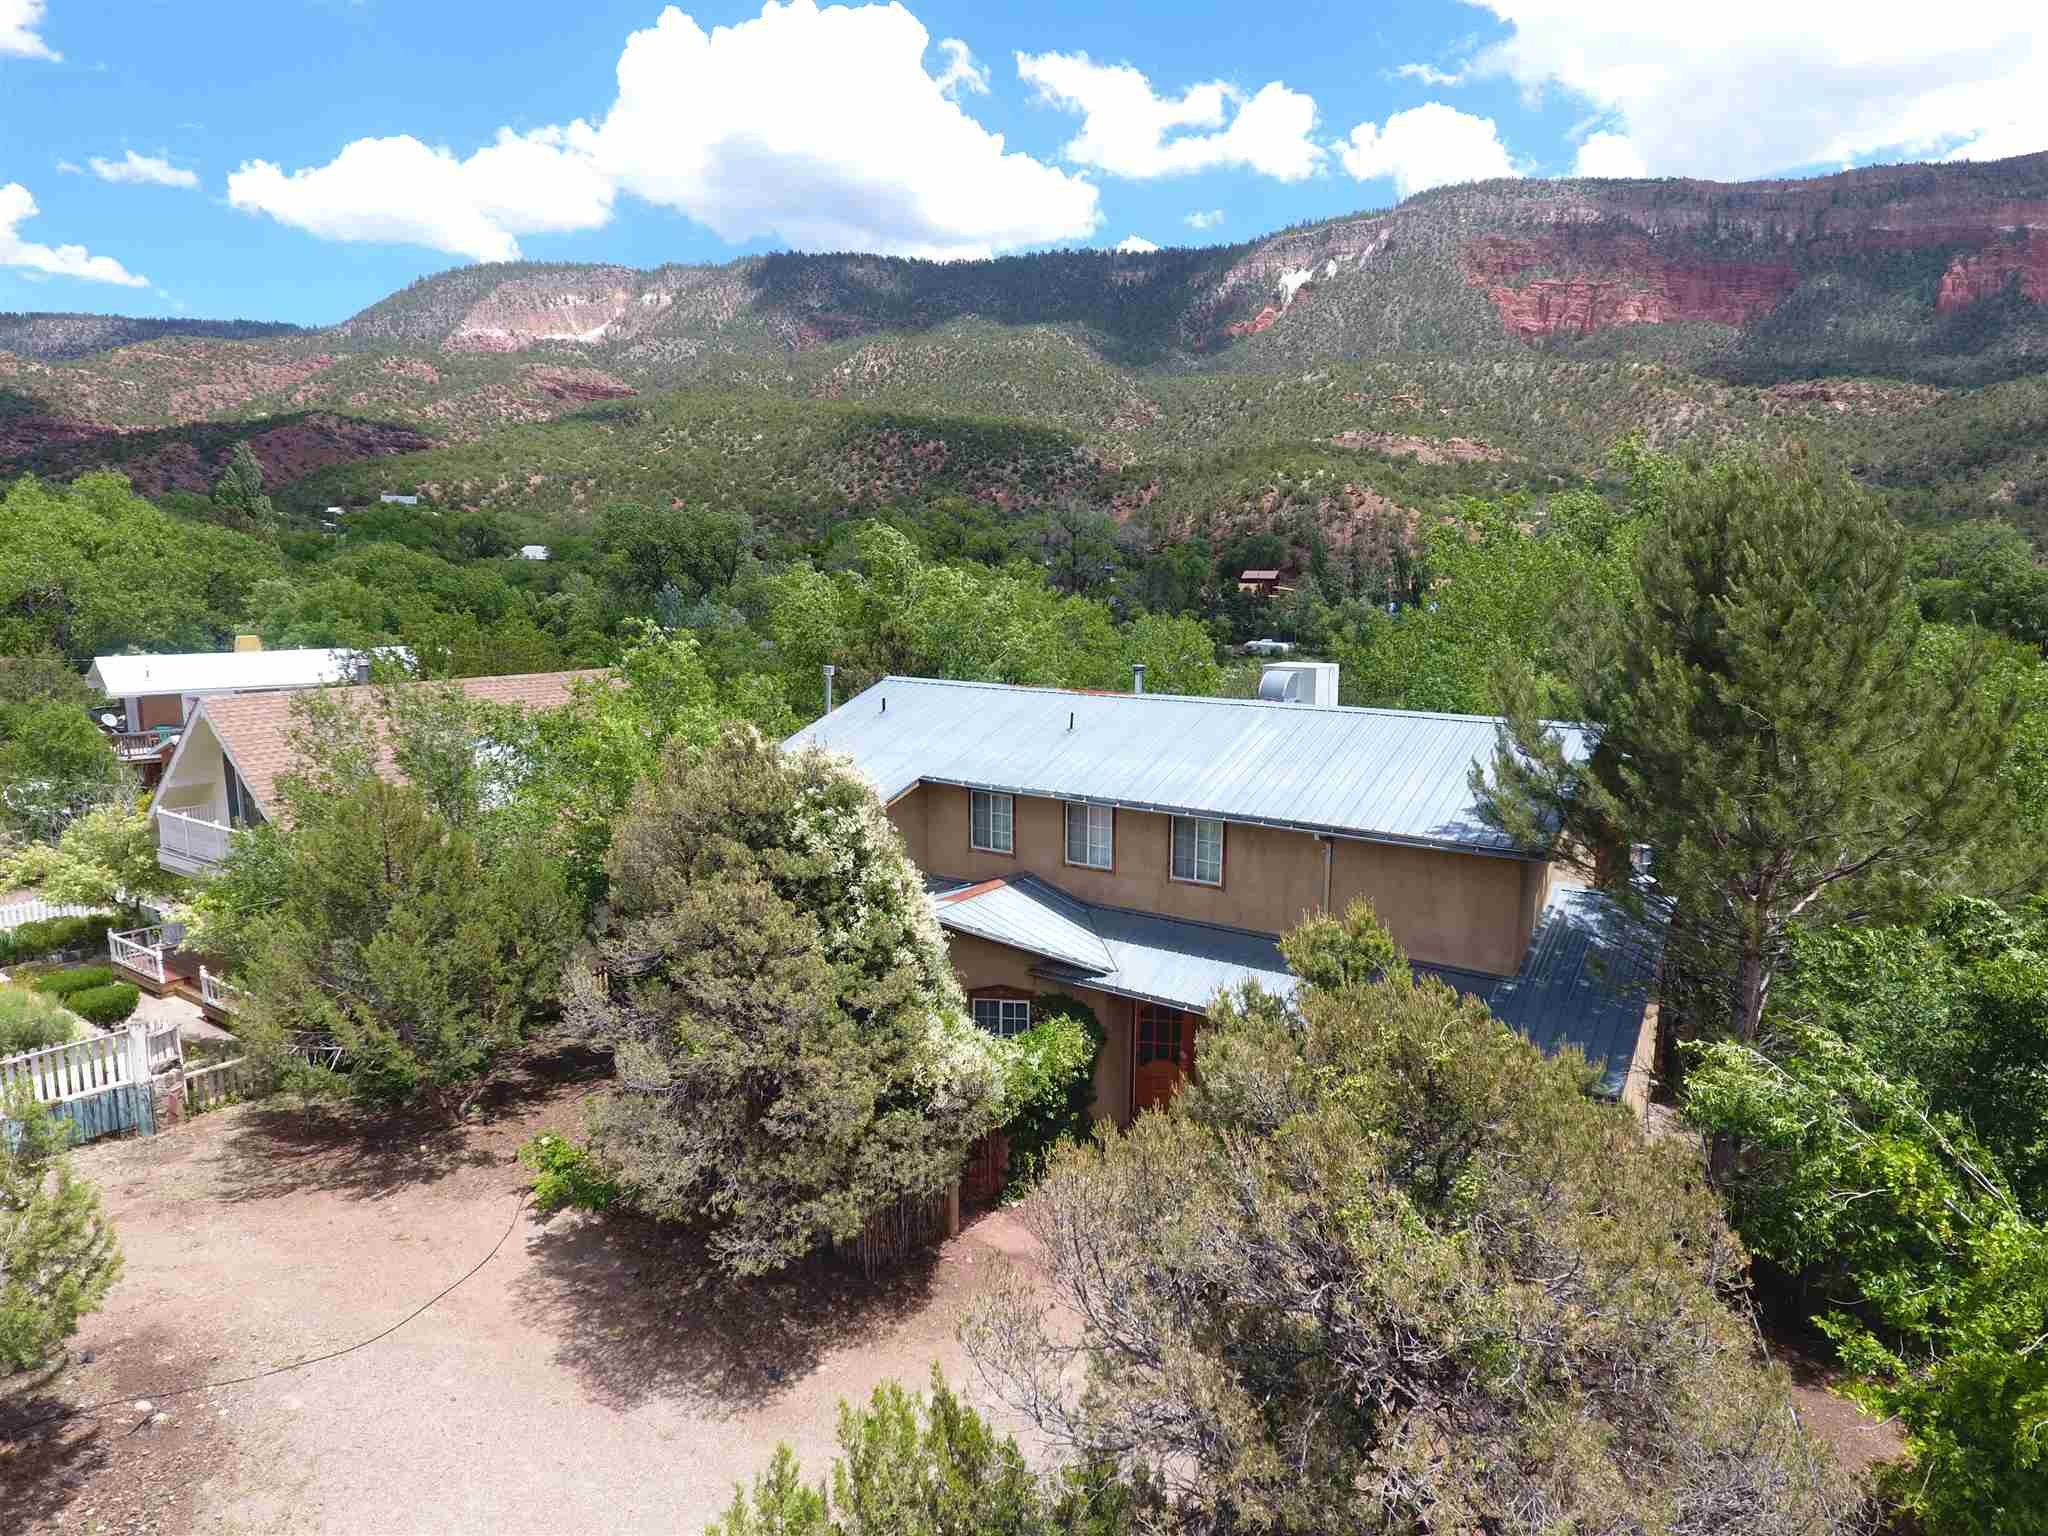 An AMAZING blend of heavenly Jemez Highlights! Perched just above the Jemez River, the fabulous home was located, designed and built to take it ALL in! Beautifully maintained and well built! Living Area and 4 generous bedrooms, 1 on main level & 3 on 2nd...EACH & EVERY ONE with sliders to the AMAZING double decker screened porches sitting right over the river!! Imagine those summer nights drifting off to that wonderful sound!! Absolutely stunning VIEWS all around. Attached 2 car garage now doubles as a game room. Located right in the Village, for easy walk to everything really, post office, library, restaurants. . Used for several years as a successful VRBO! All the beautiful furnishings remain if you want them. City water & sewer so no well or septic to worry with. Bring the fishing gear!